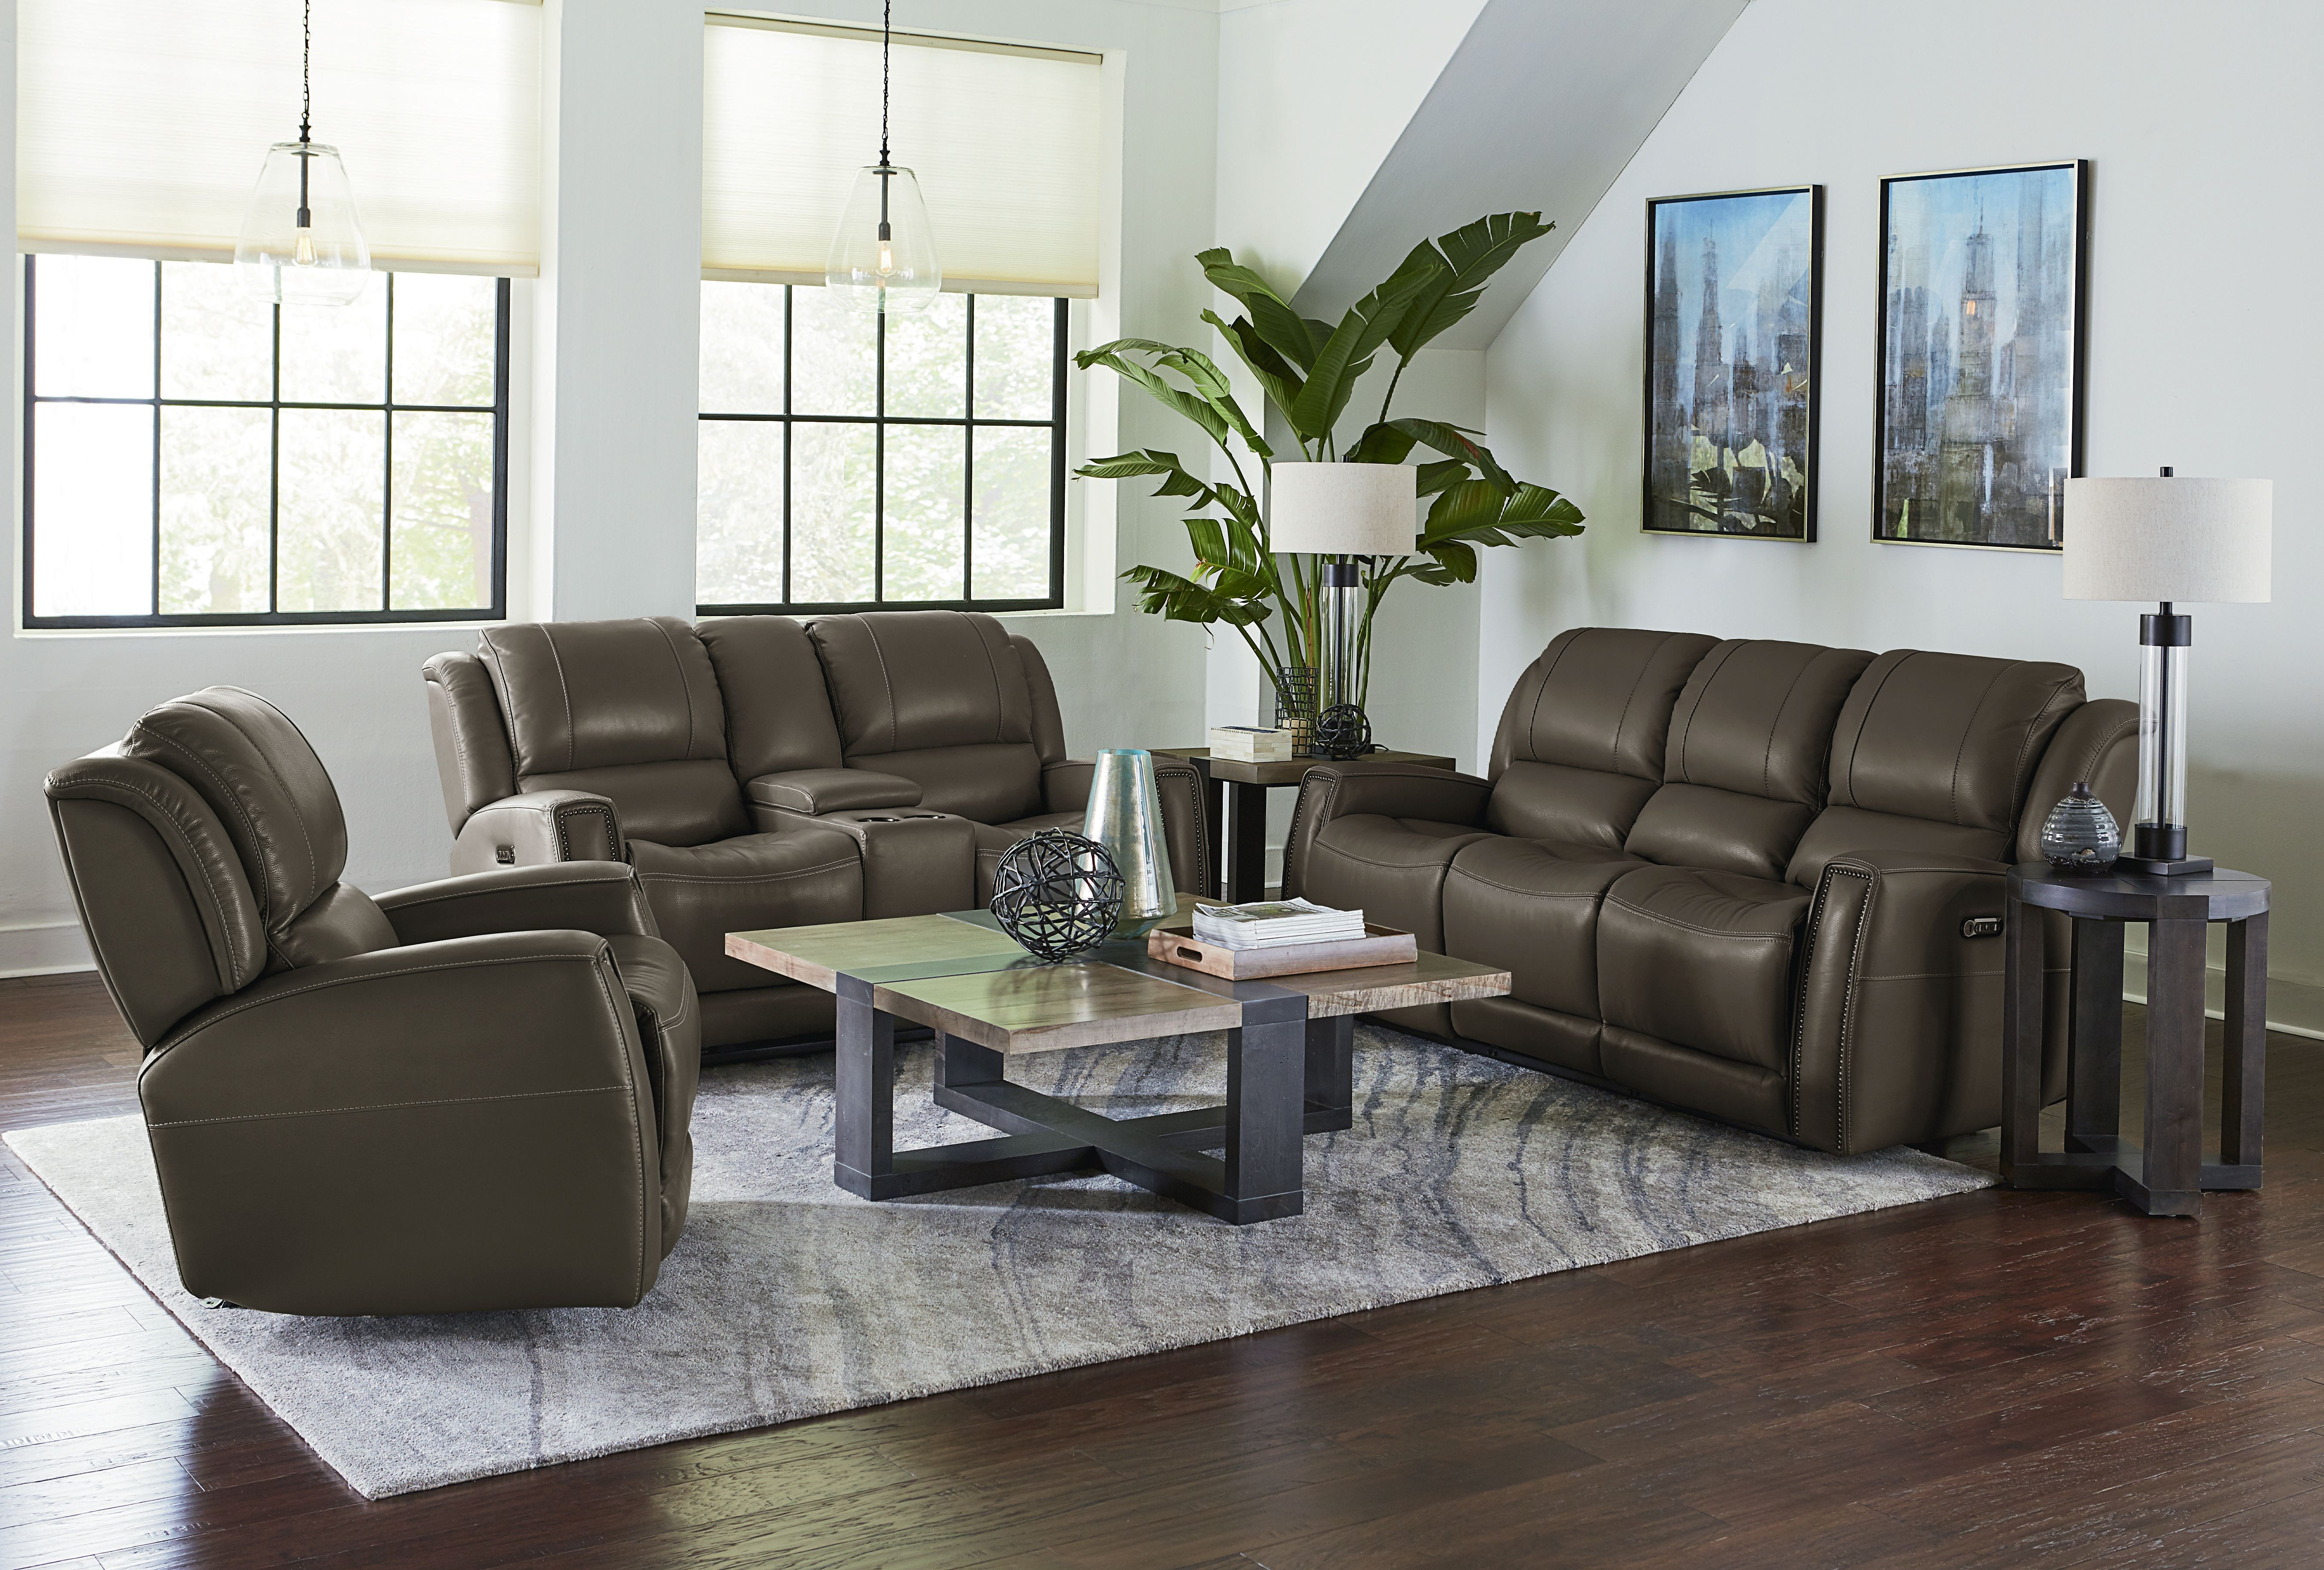 Fashionable Landry Sofa Chairs With Avon Club Chairs & Sofas From Bassett Club Level (View 5 of 20)